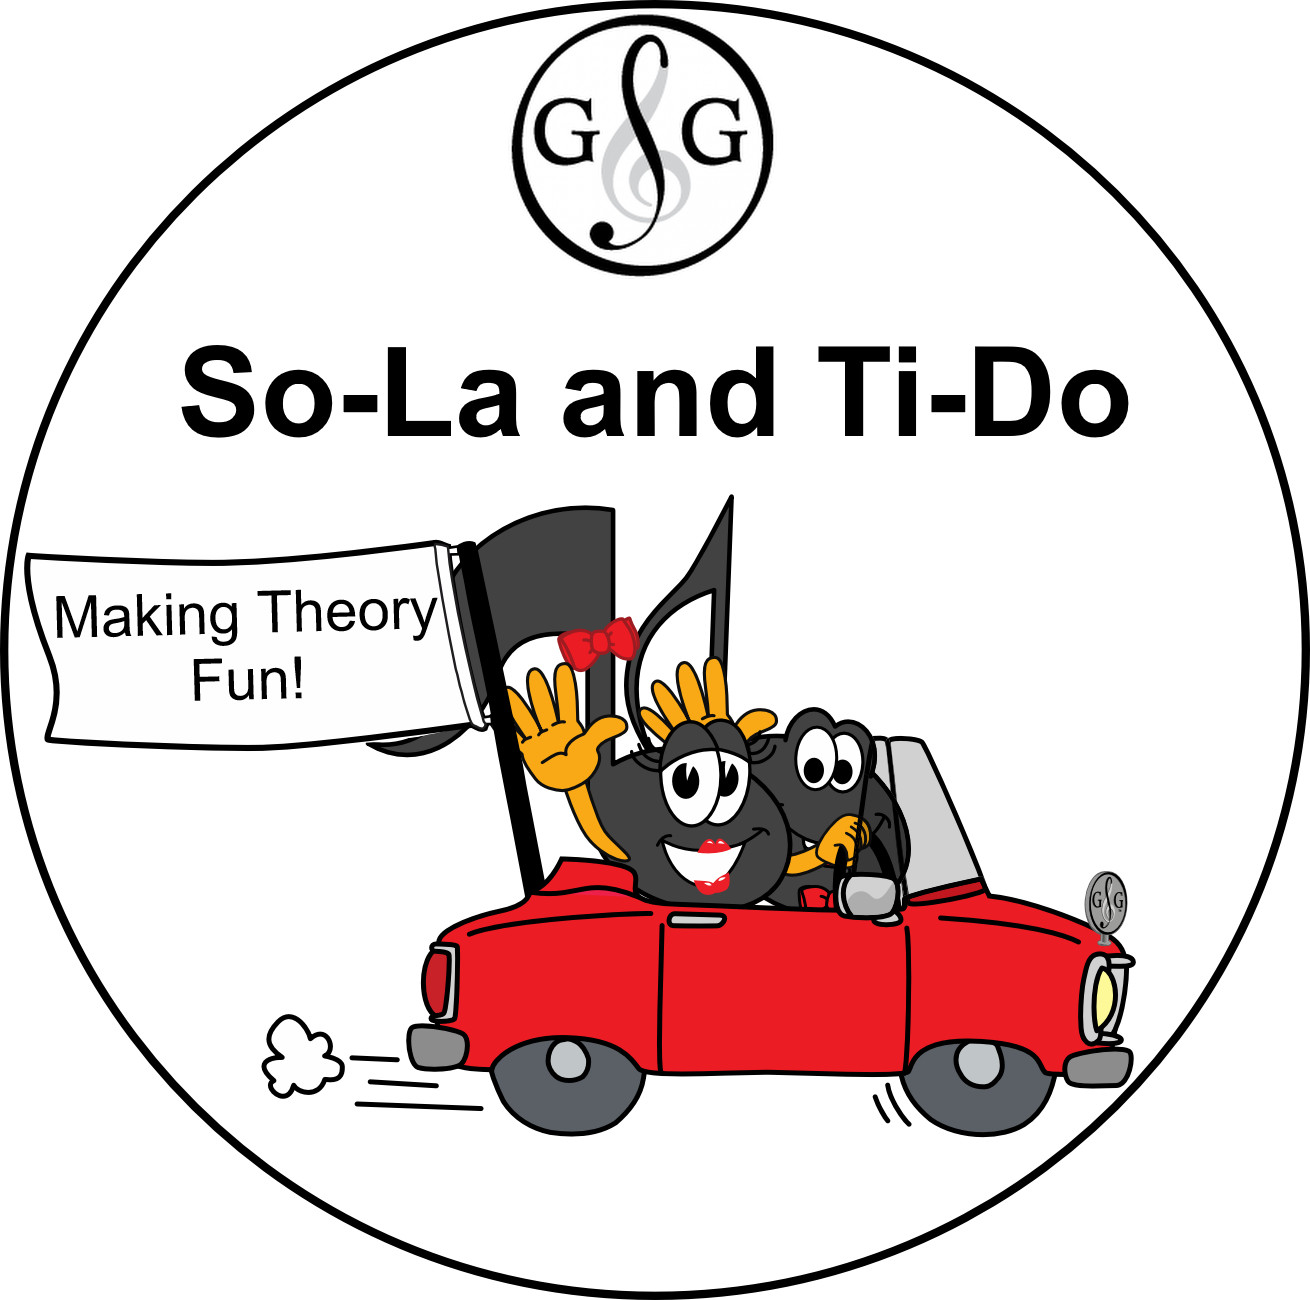 UMT - So-La and Ti-Do Making Theory Fun